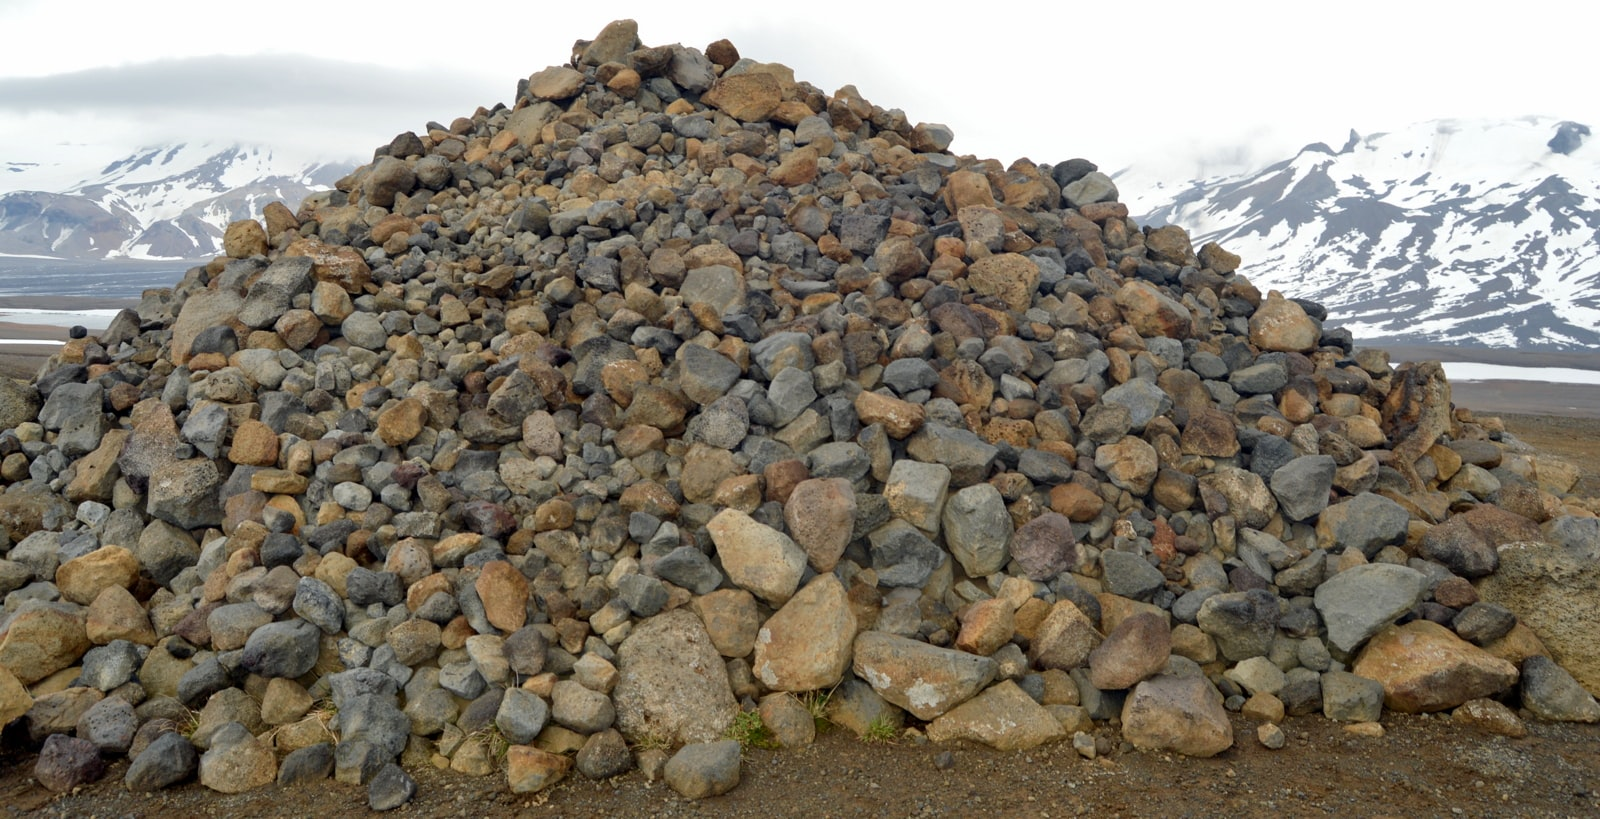 The old Tradition of creating Stone Cairns in Iceland ...